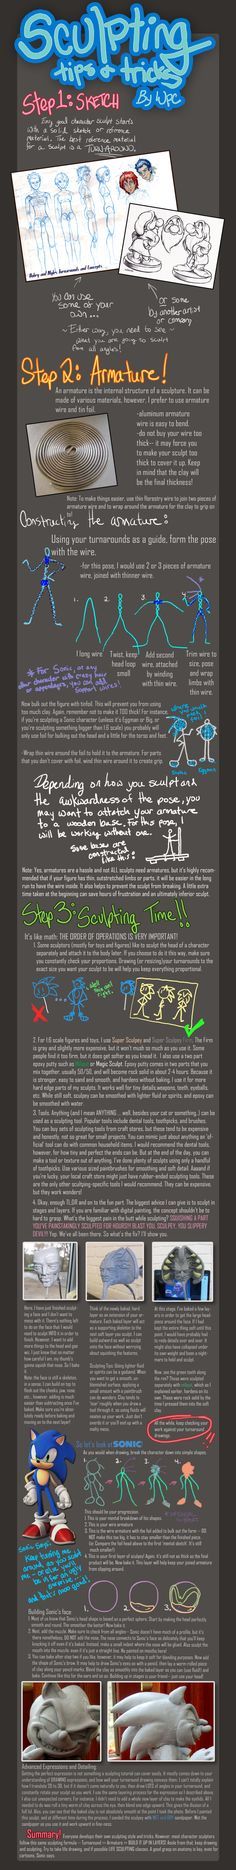 Sculpting Tips and Tricks by ZoomSwish on DeviantArt